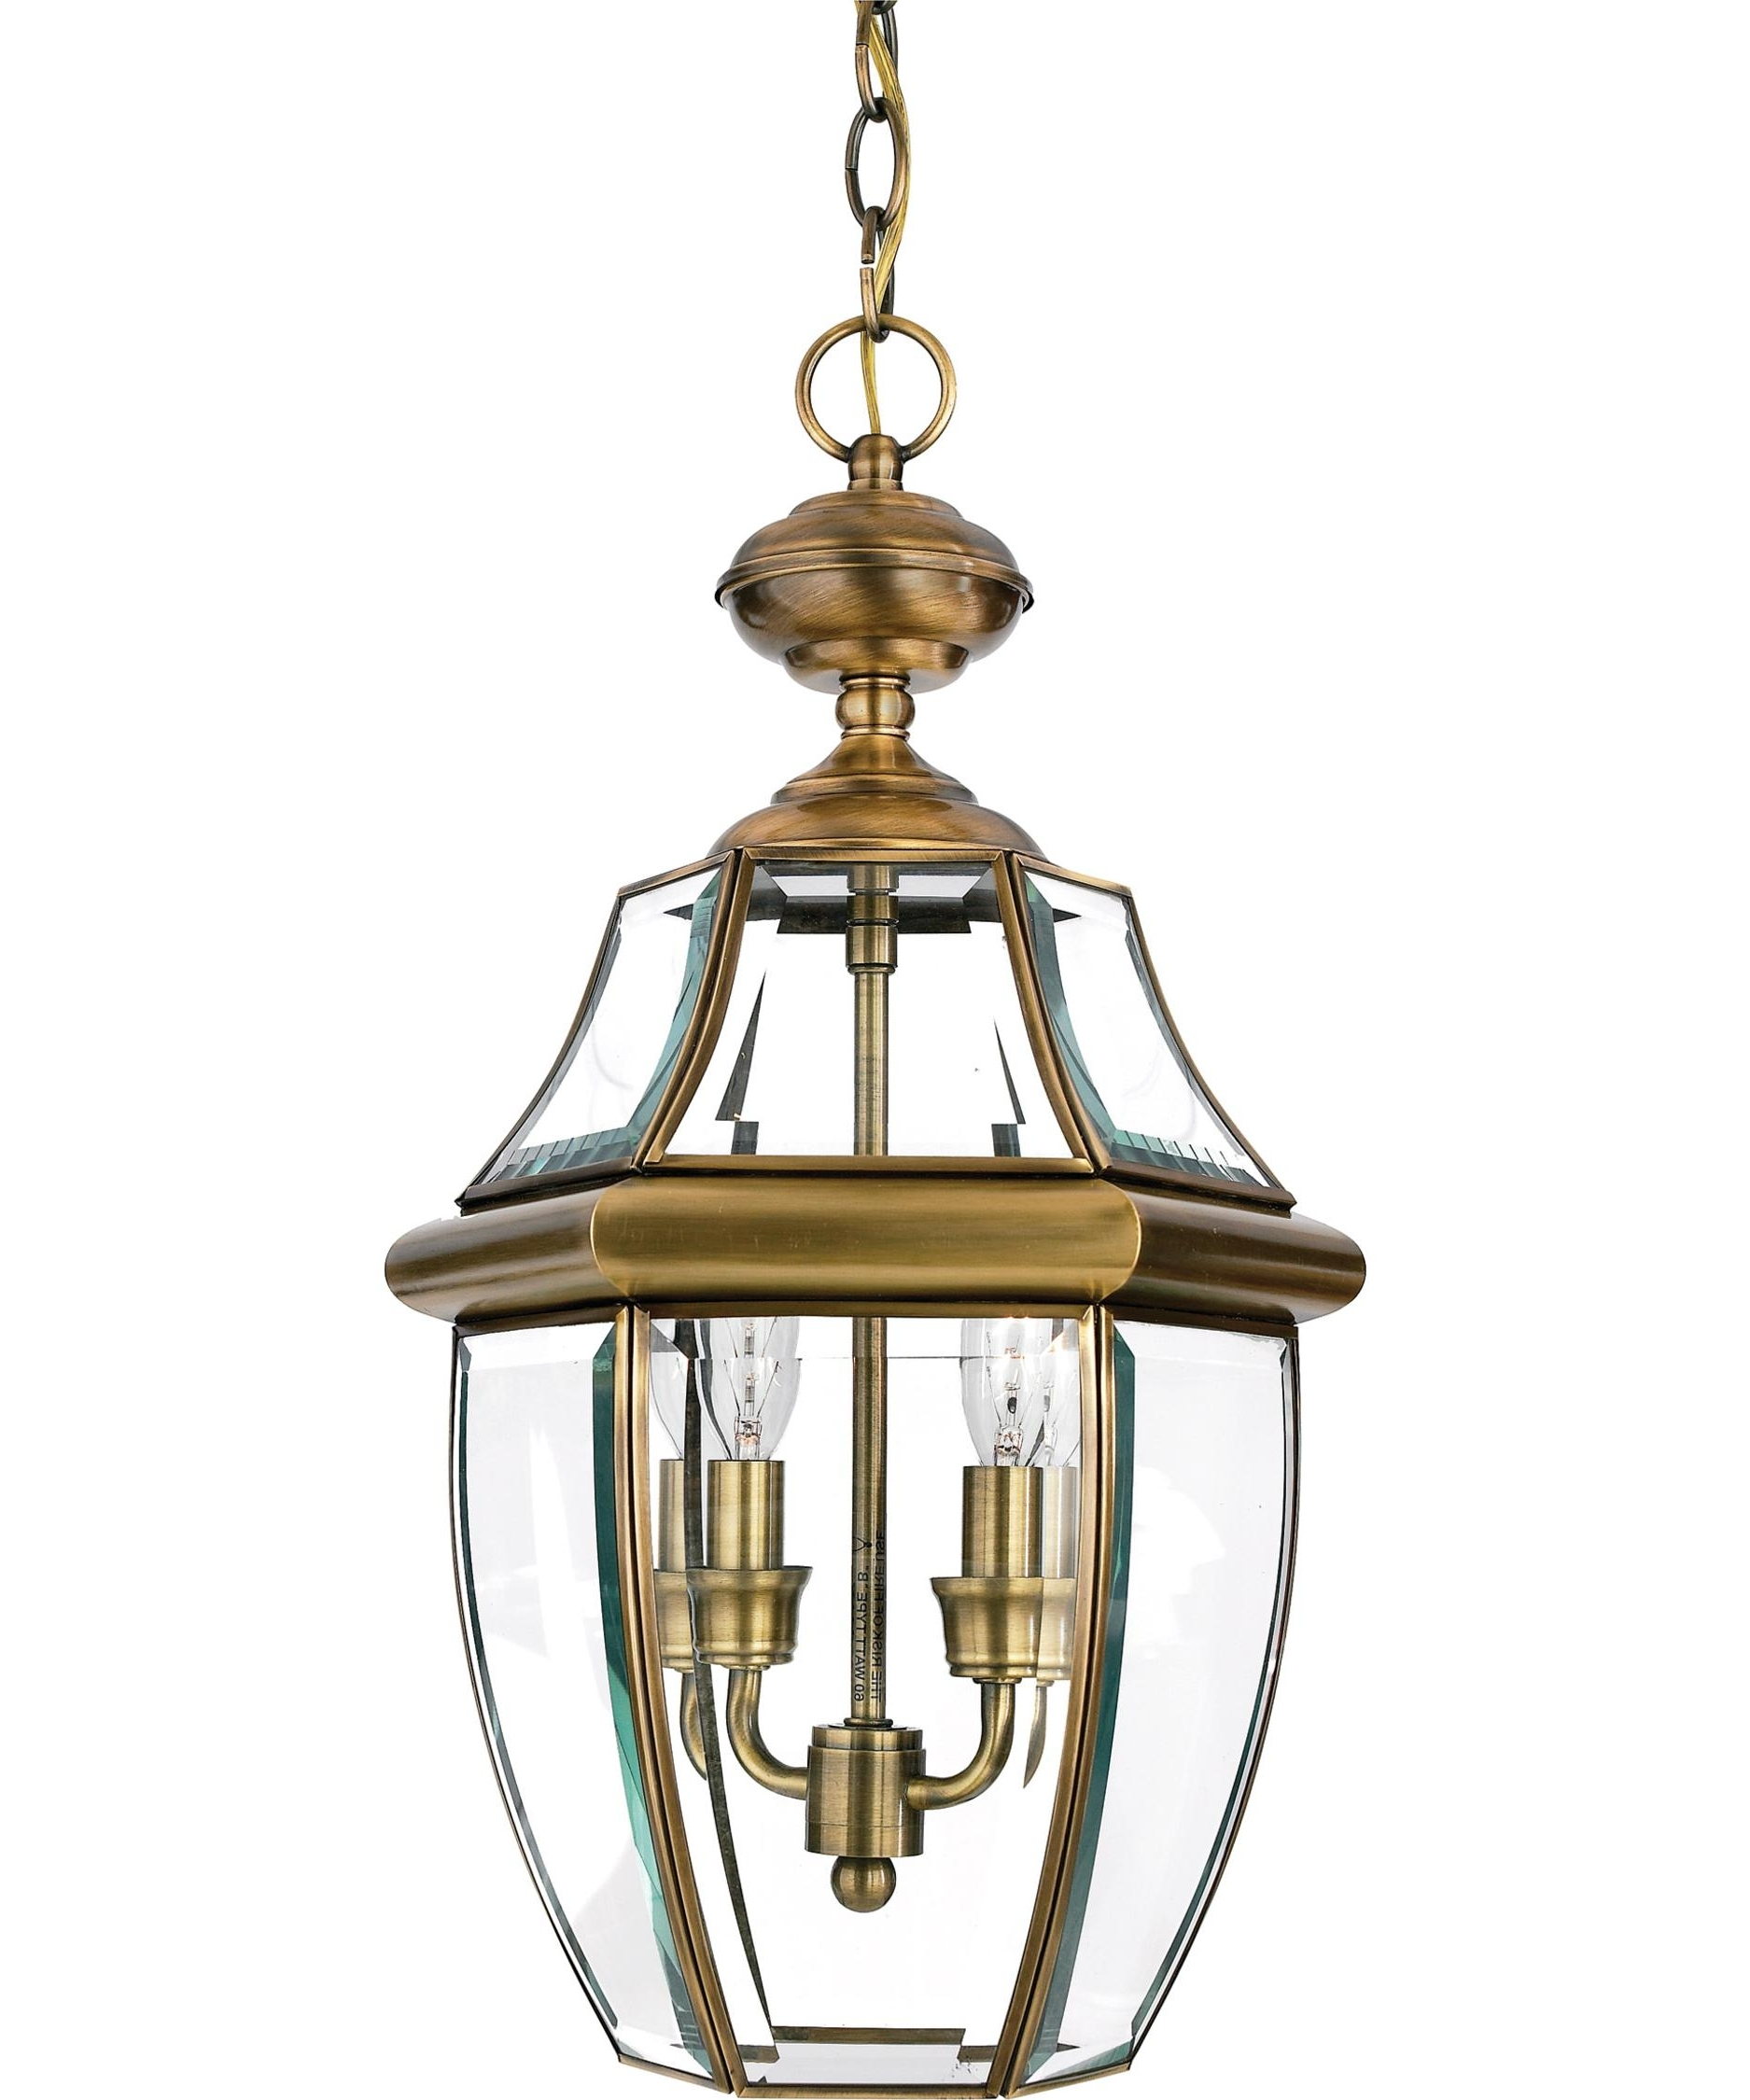 Antique Outdoor Lanterns Regarding Favorite Quoizel Ny1178 Newbury 10 Inch Wide 2 Light Outdoor Hanging Lantern (Gallery 16 of 20)